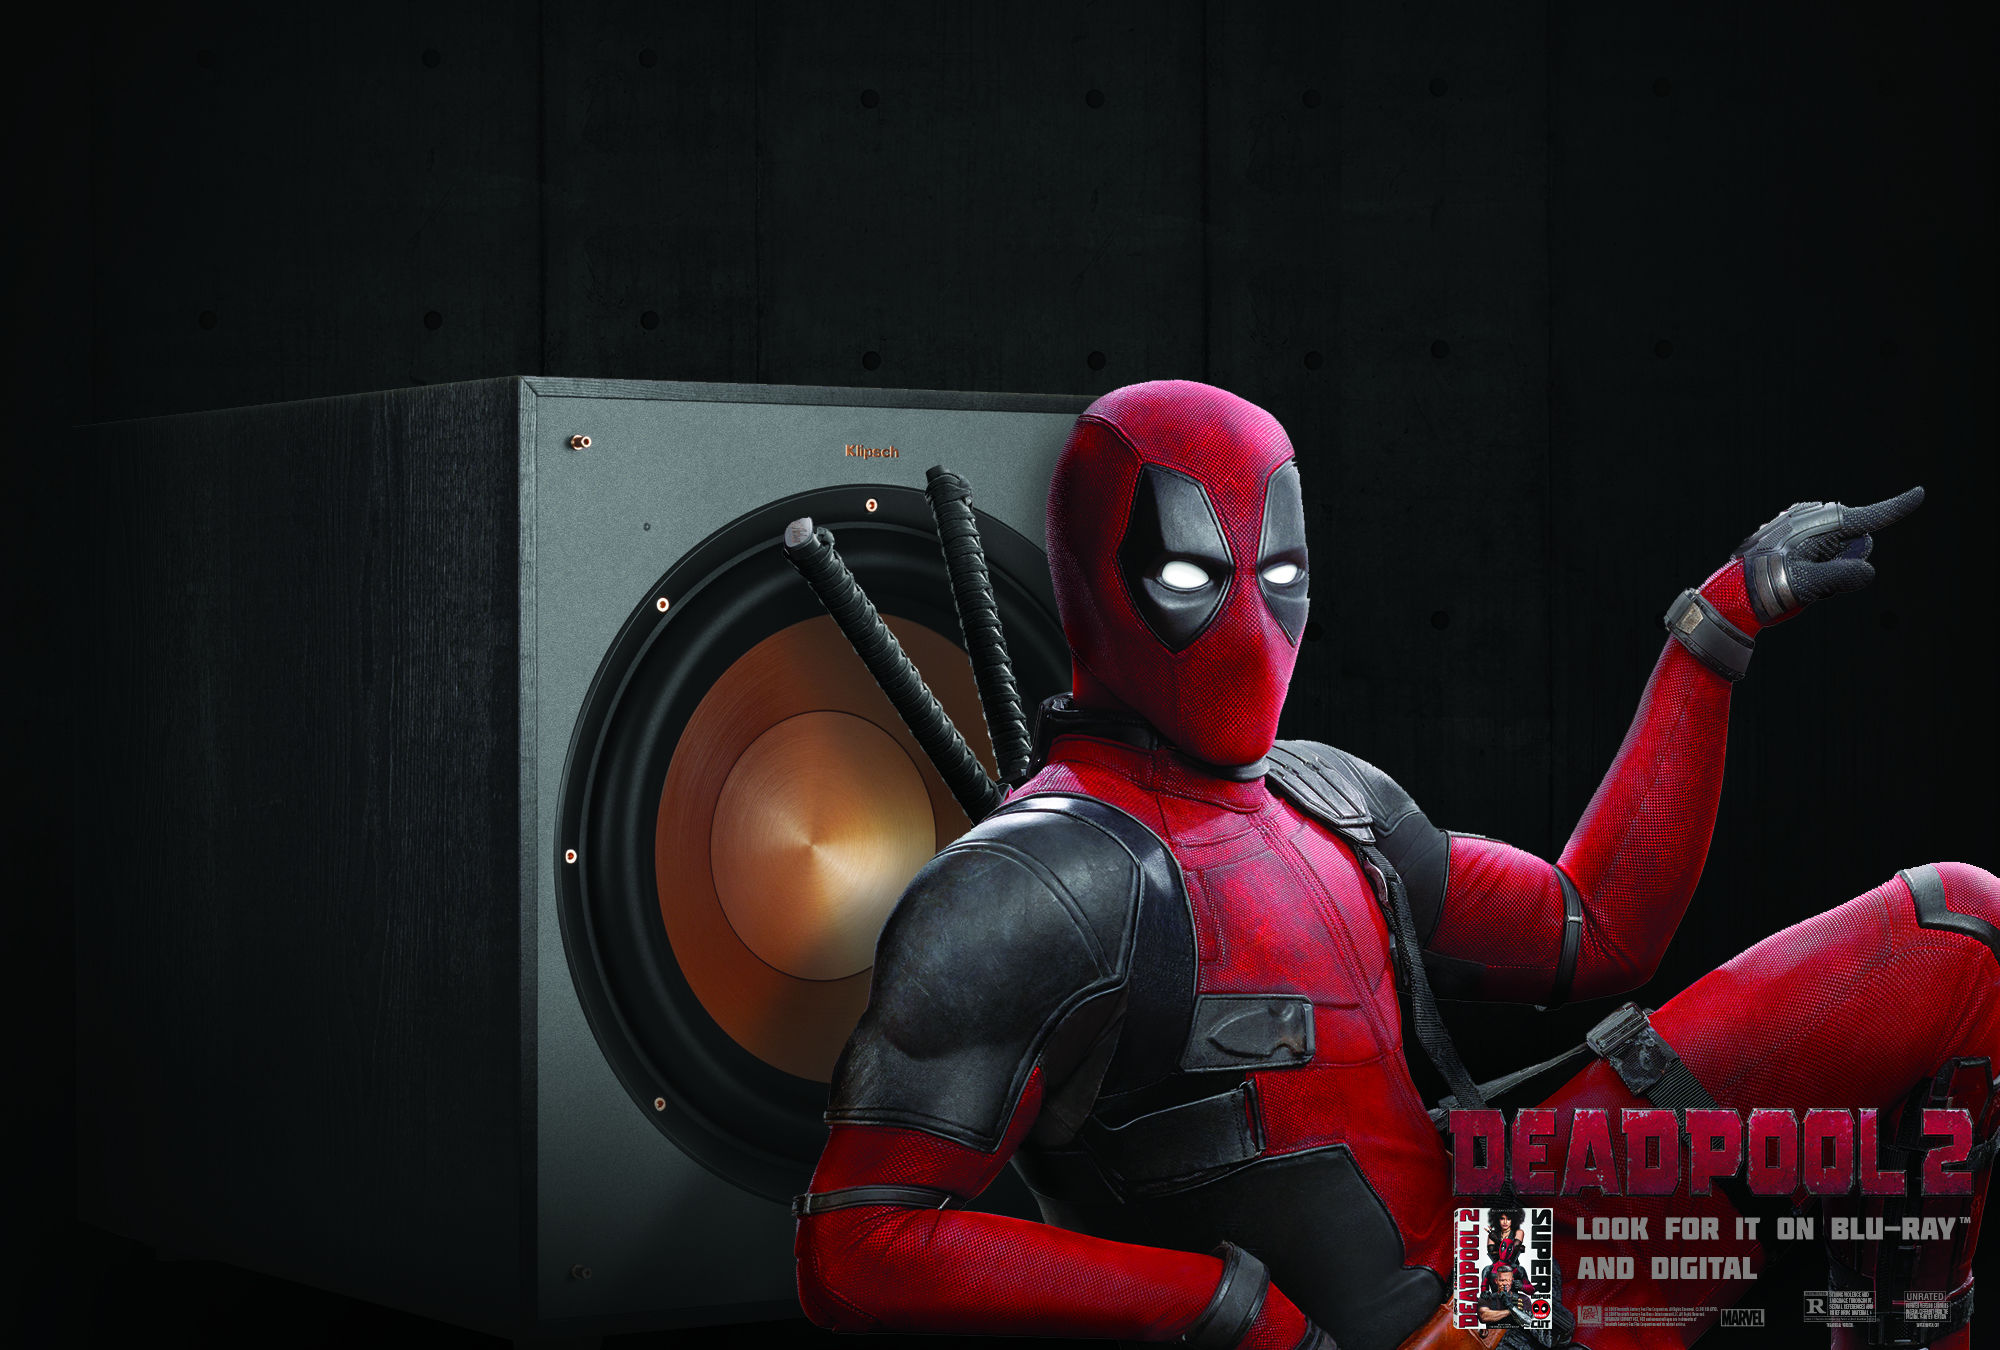 Klipsch Deadpool 2 subwoofer